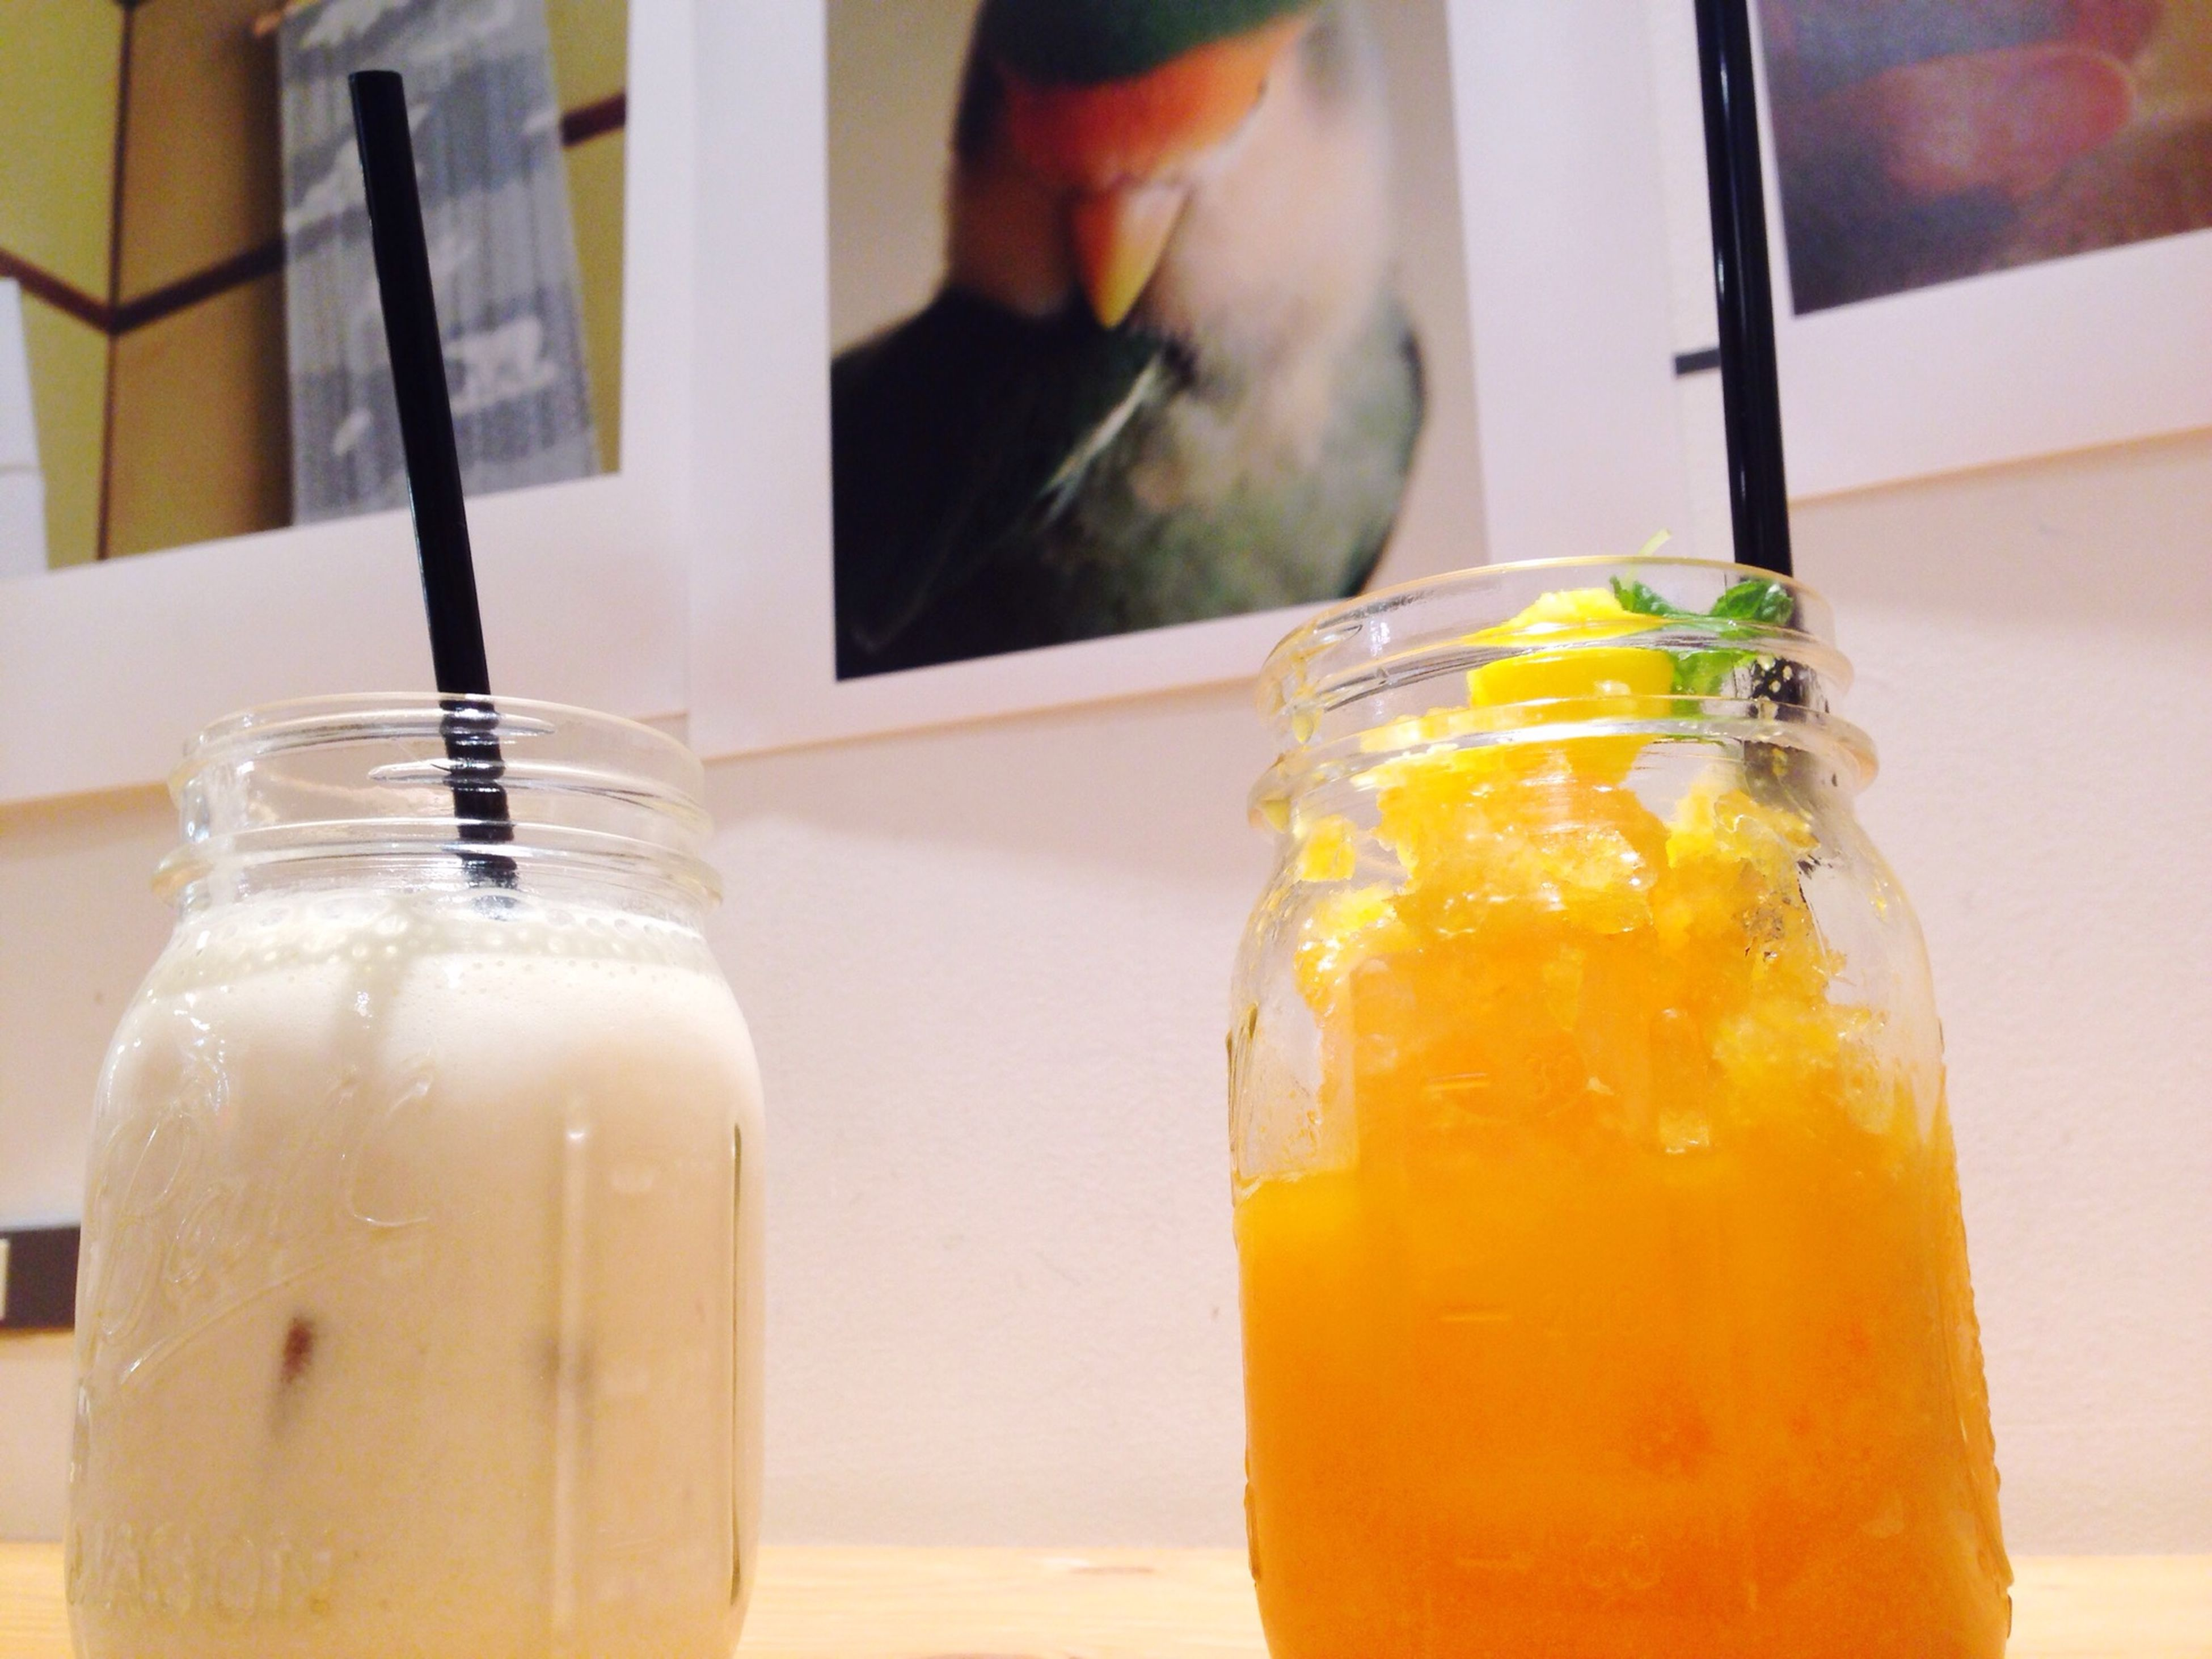 food and drink, drink, refreshment, drinking glass, freshness, yellow, drinking straw, indoors, alcohol, table, close-up, juice, glass - material, healthy eating, focus on foreground, cocktail, glass, still life, food, fruit